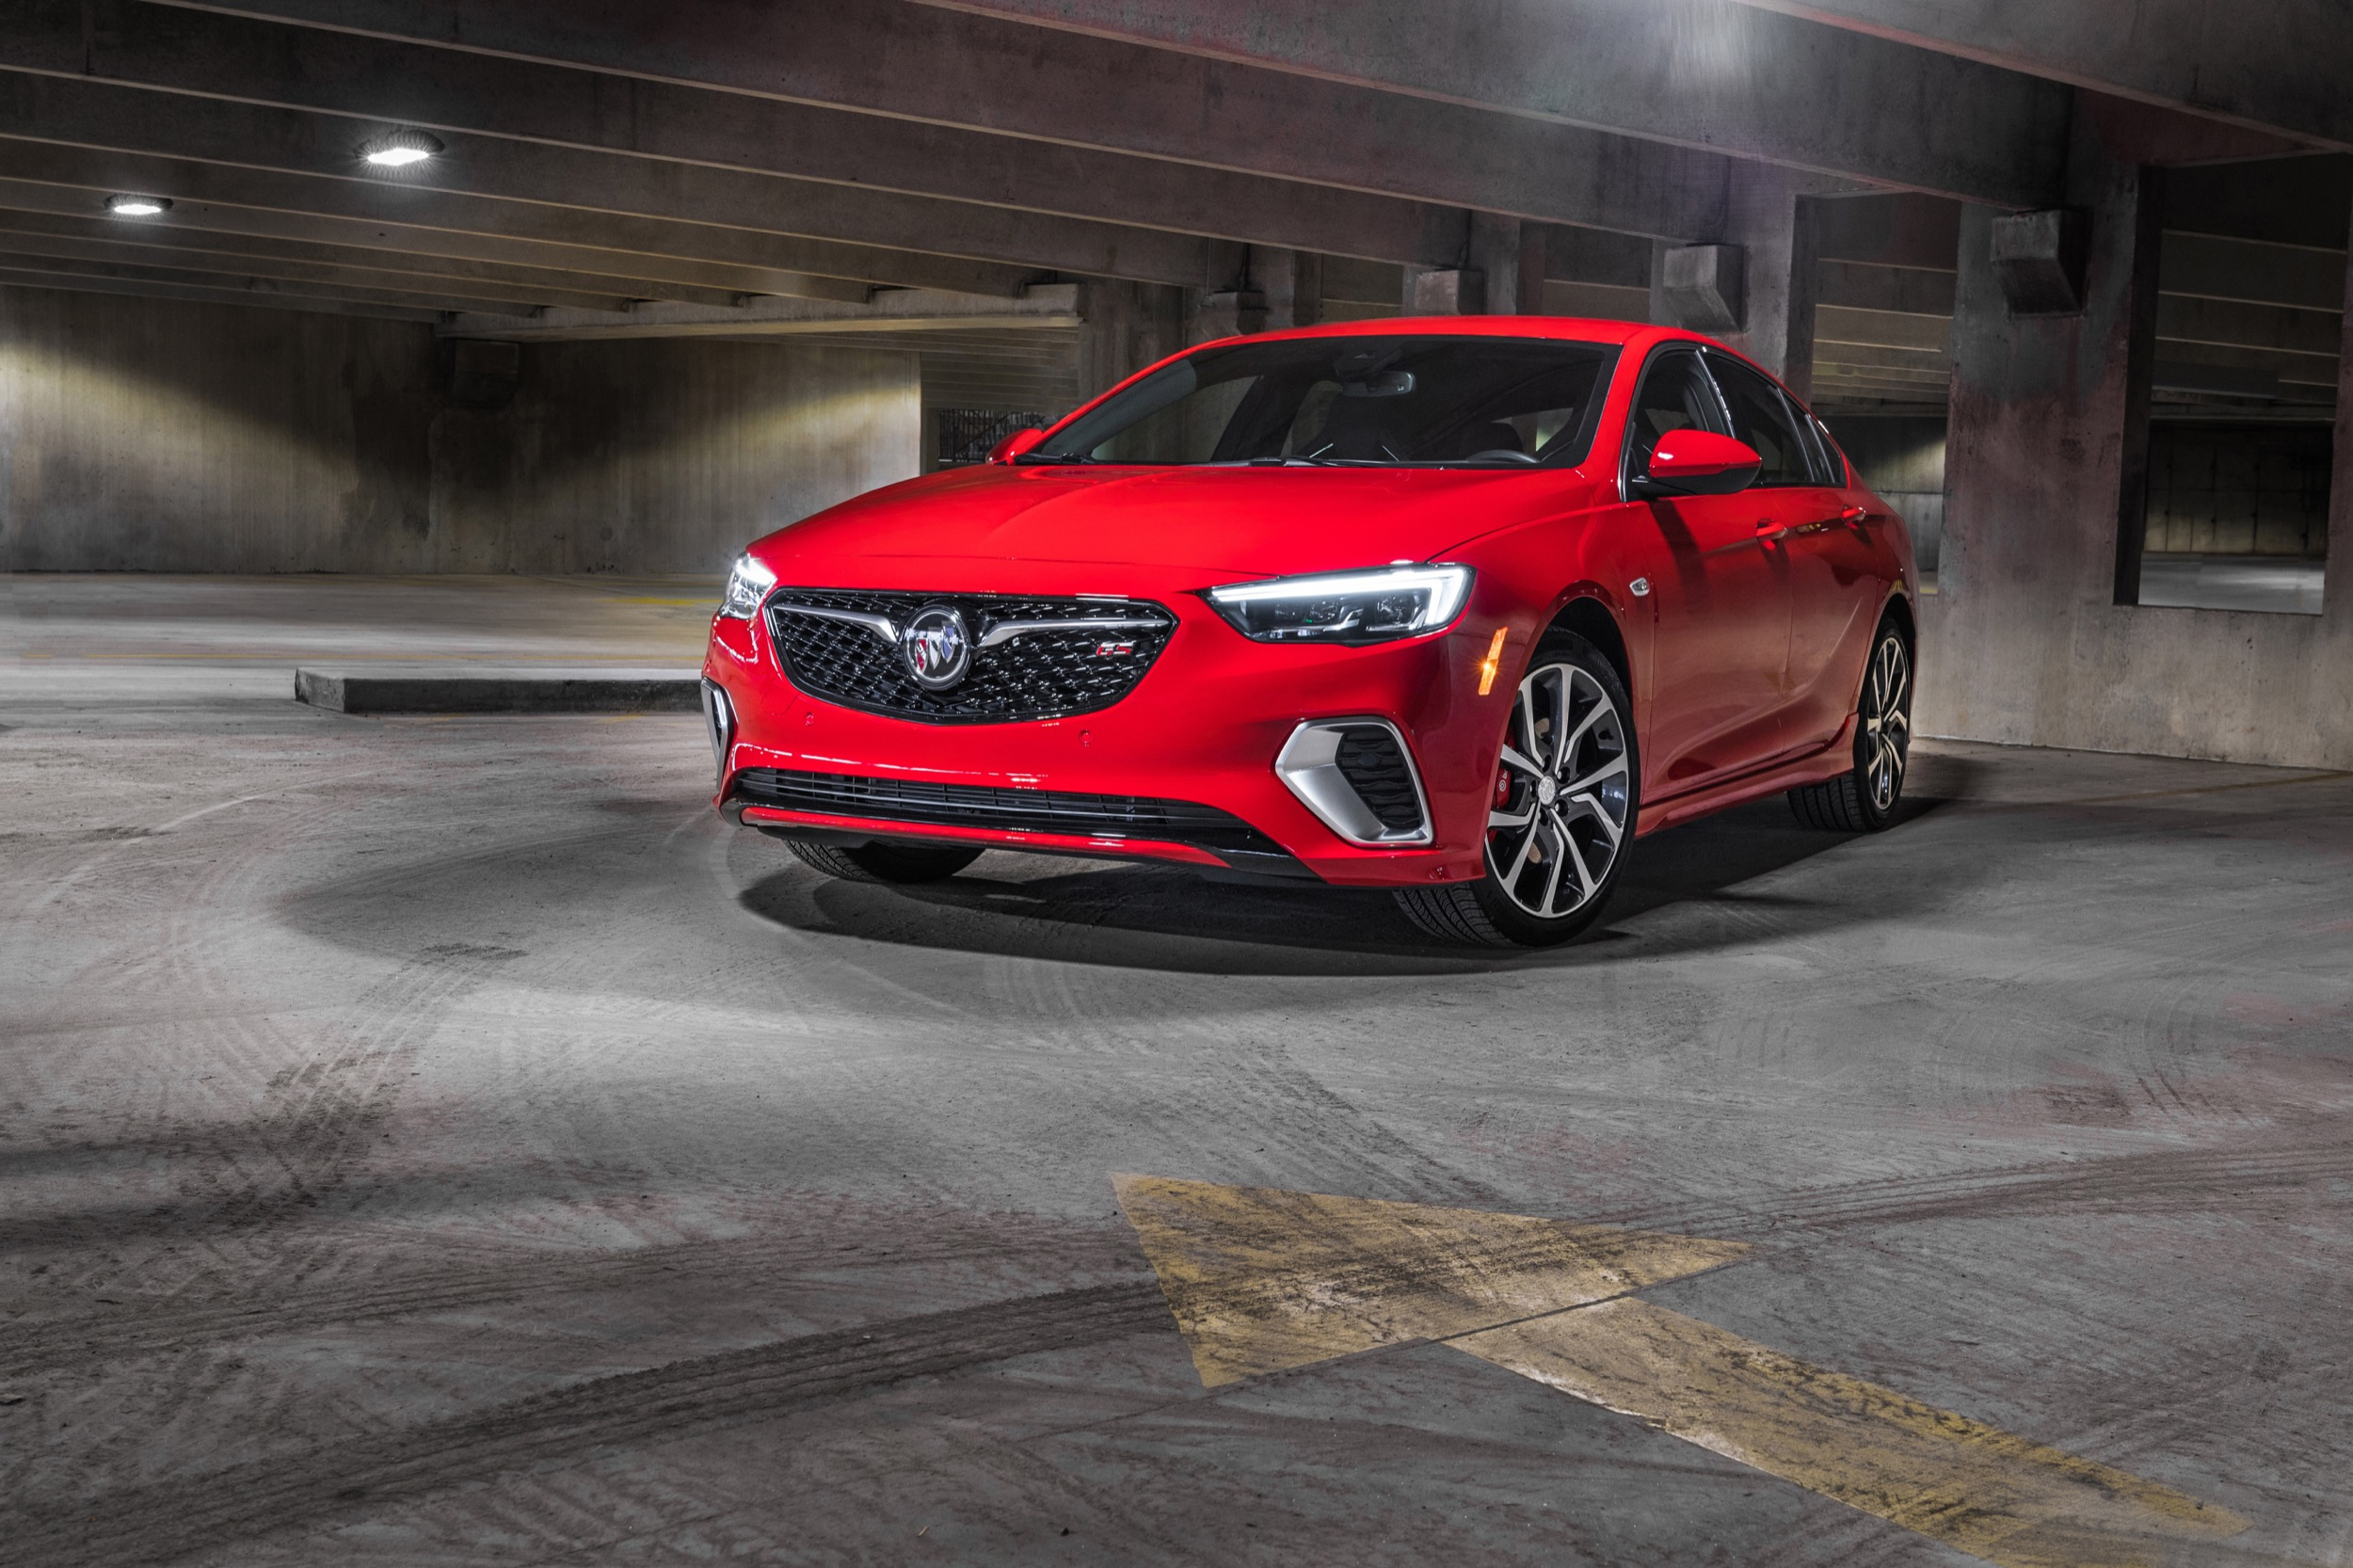 2022 Buick Regal Info, Specs, Wiki | Gm Authority Will There Be A New 2022 Buick Regal